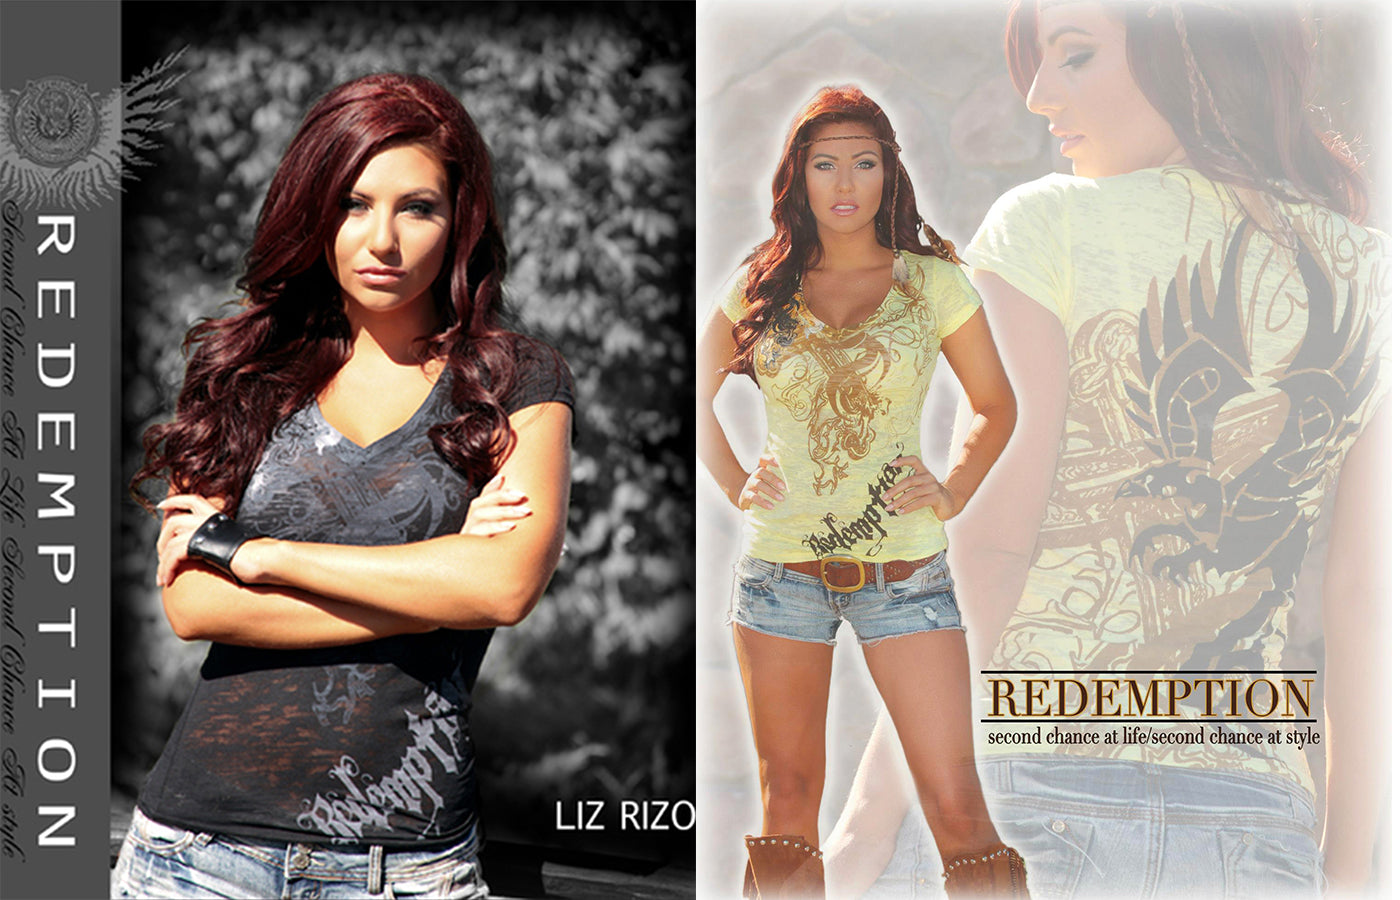 Liz Rizo Redemption Womens Faith